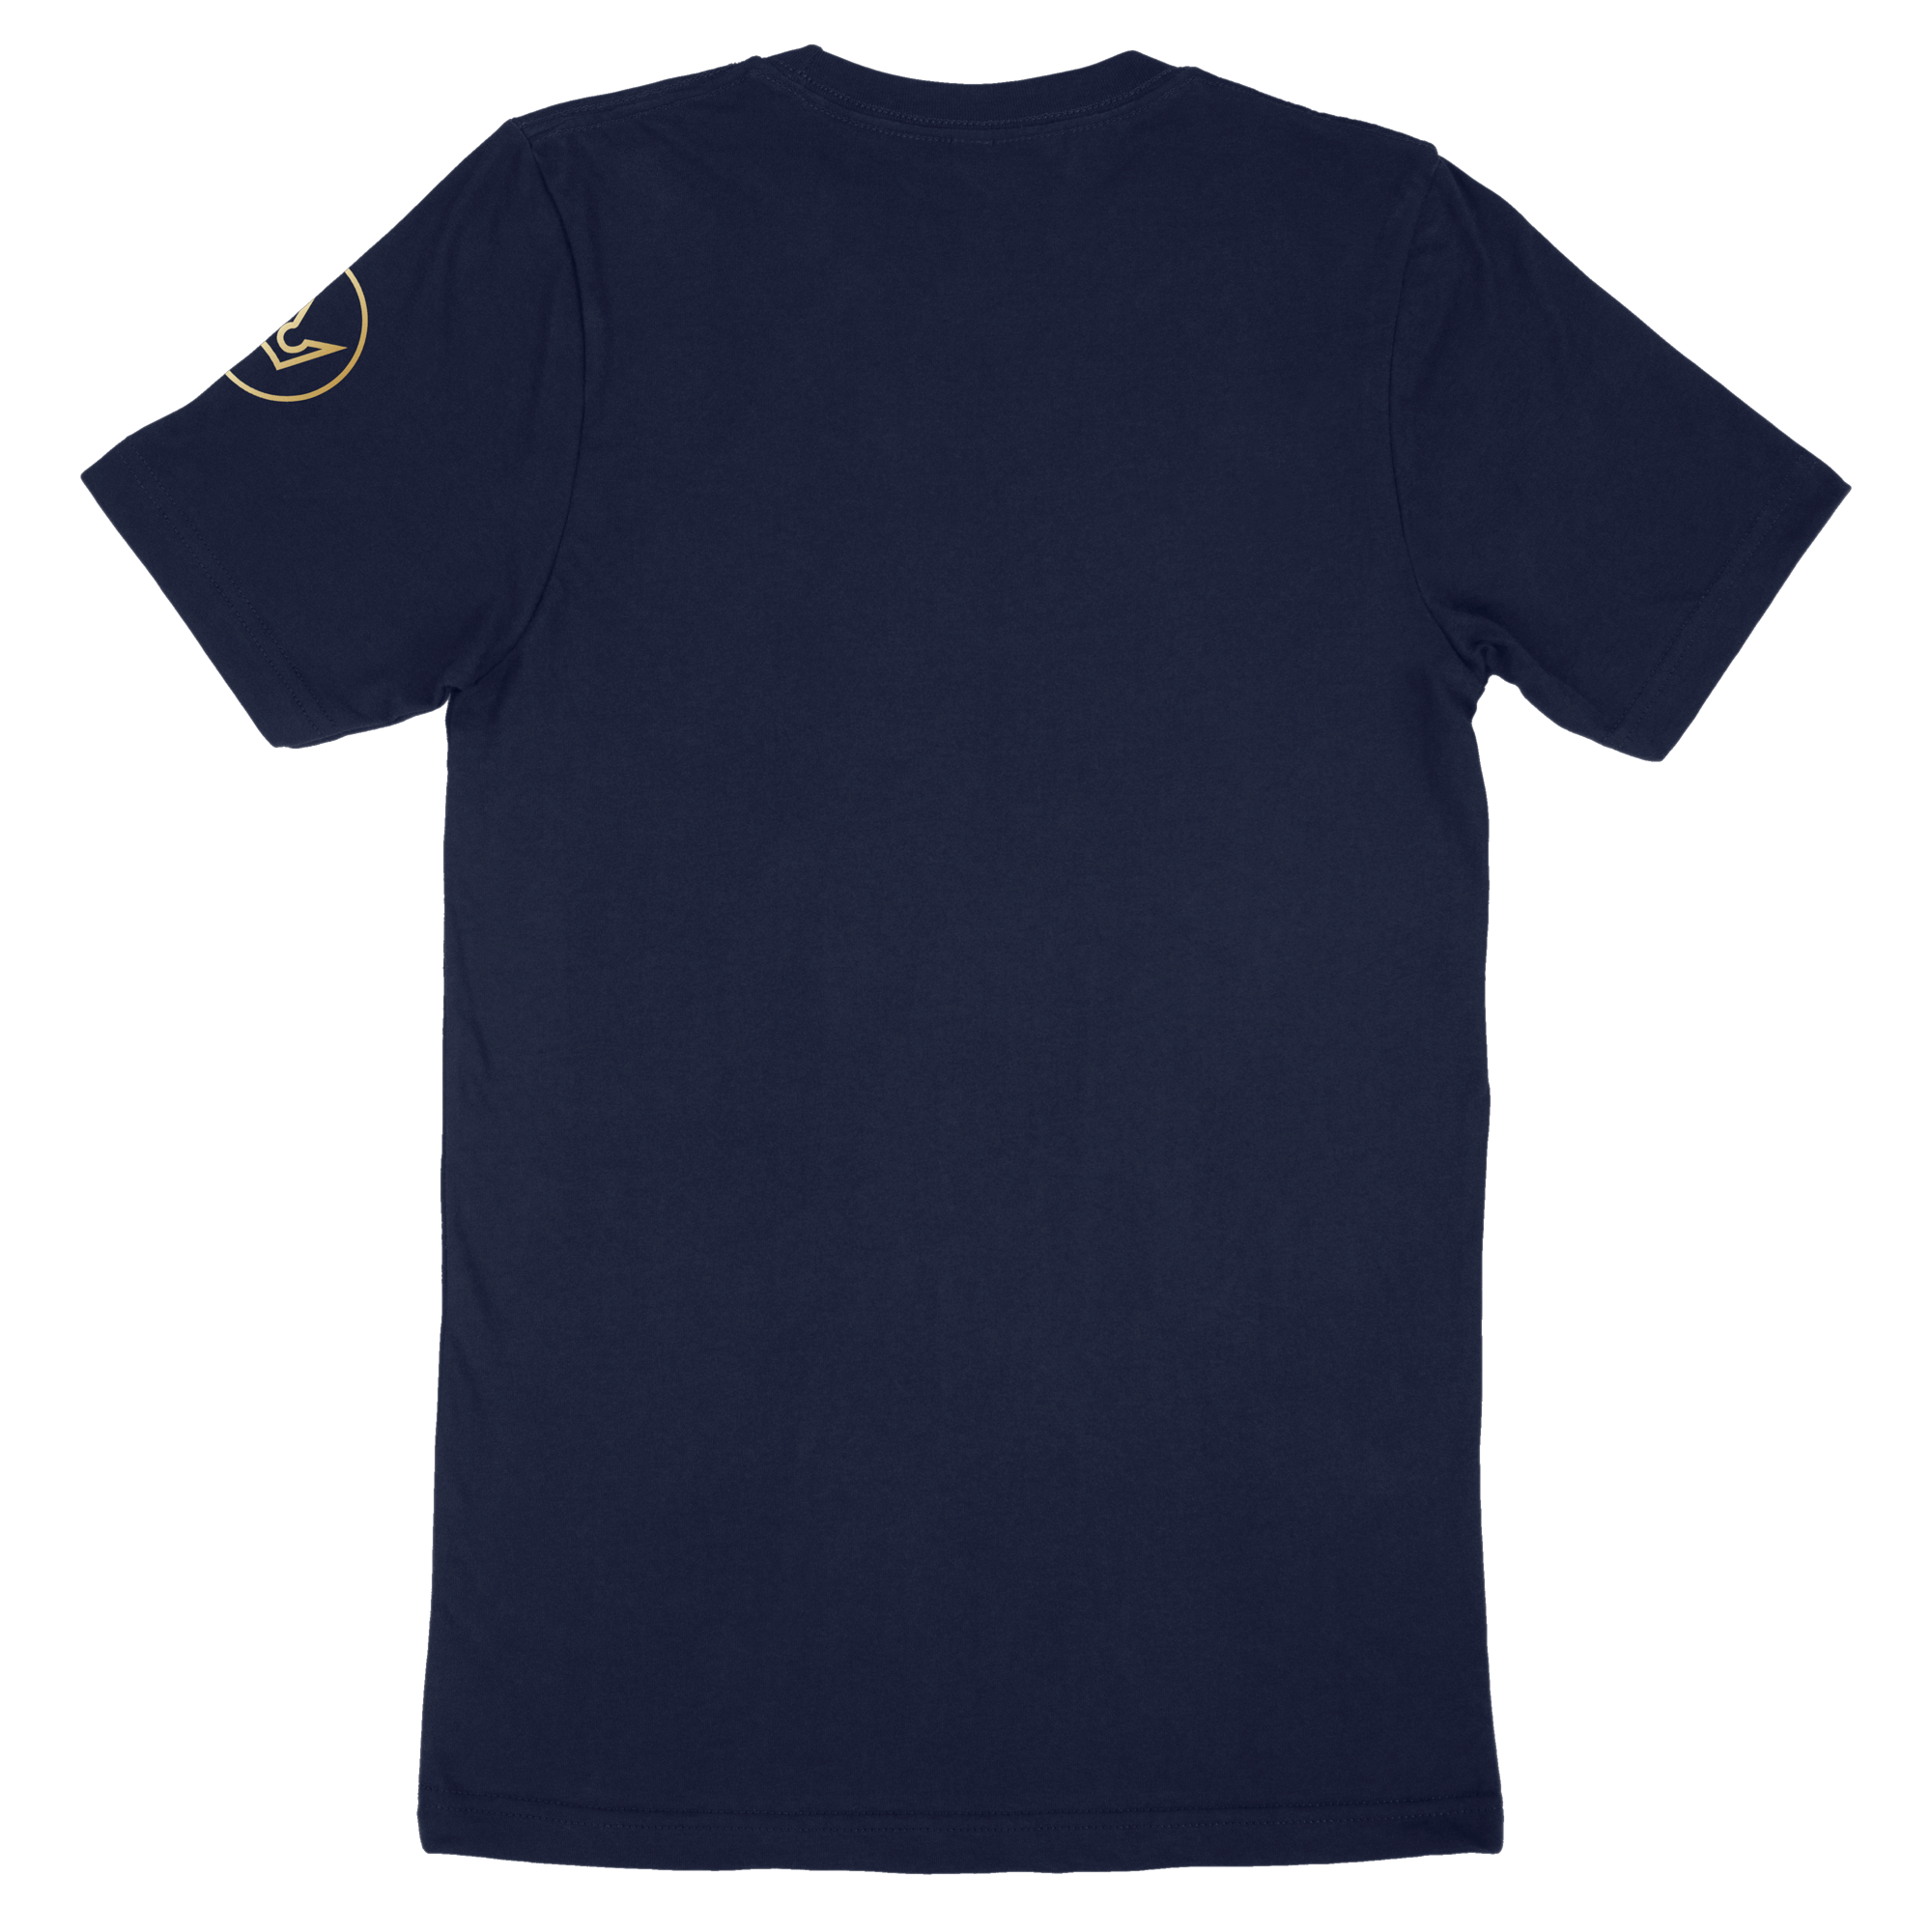 EQNX Essential Tee